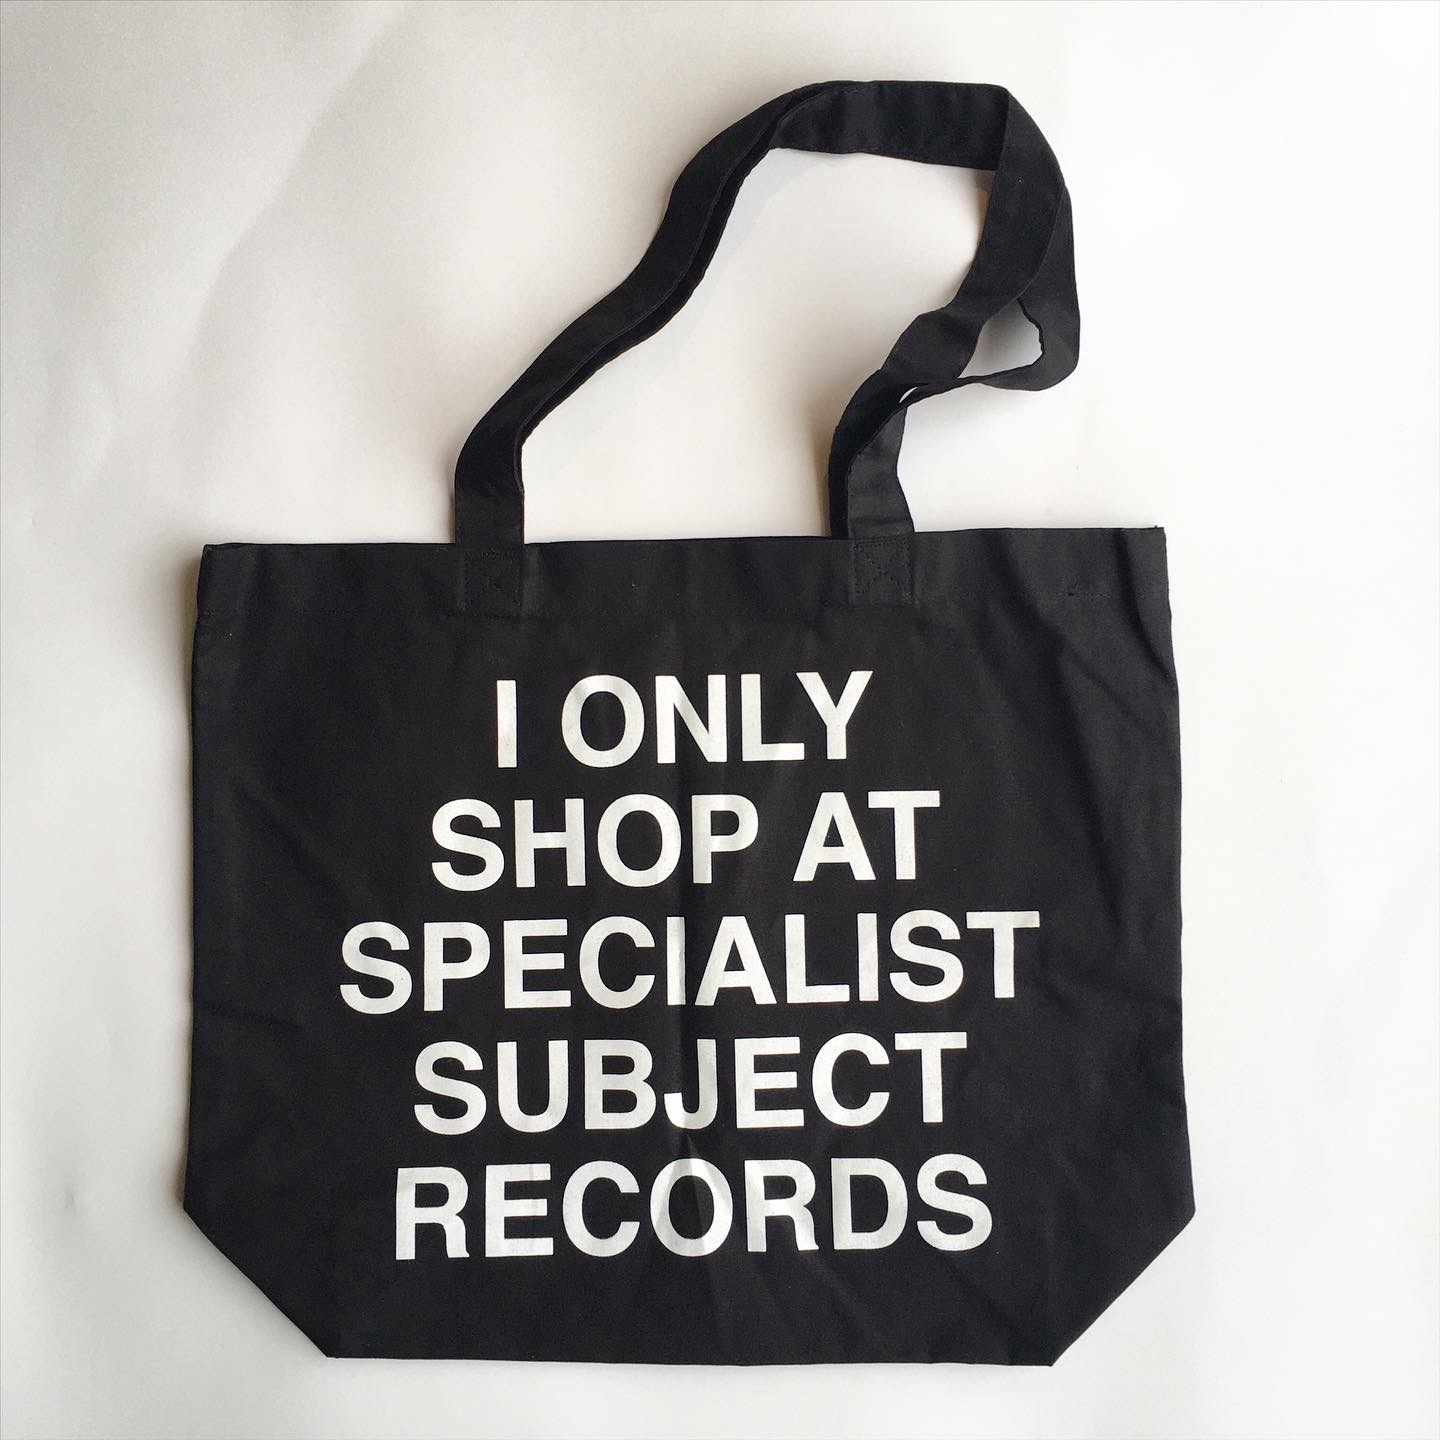 'I Only Shop At Specialist Subject' Tote